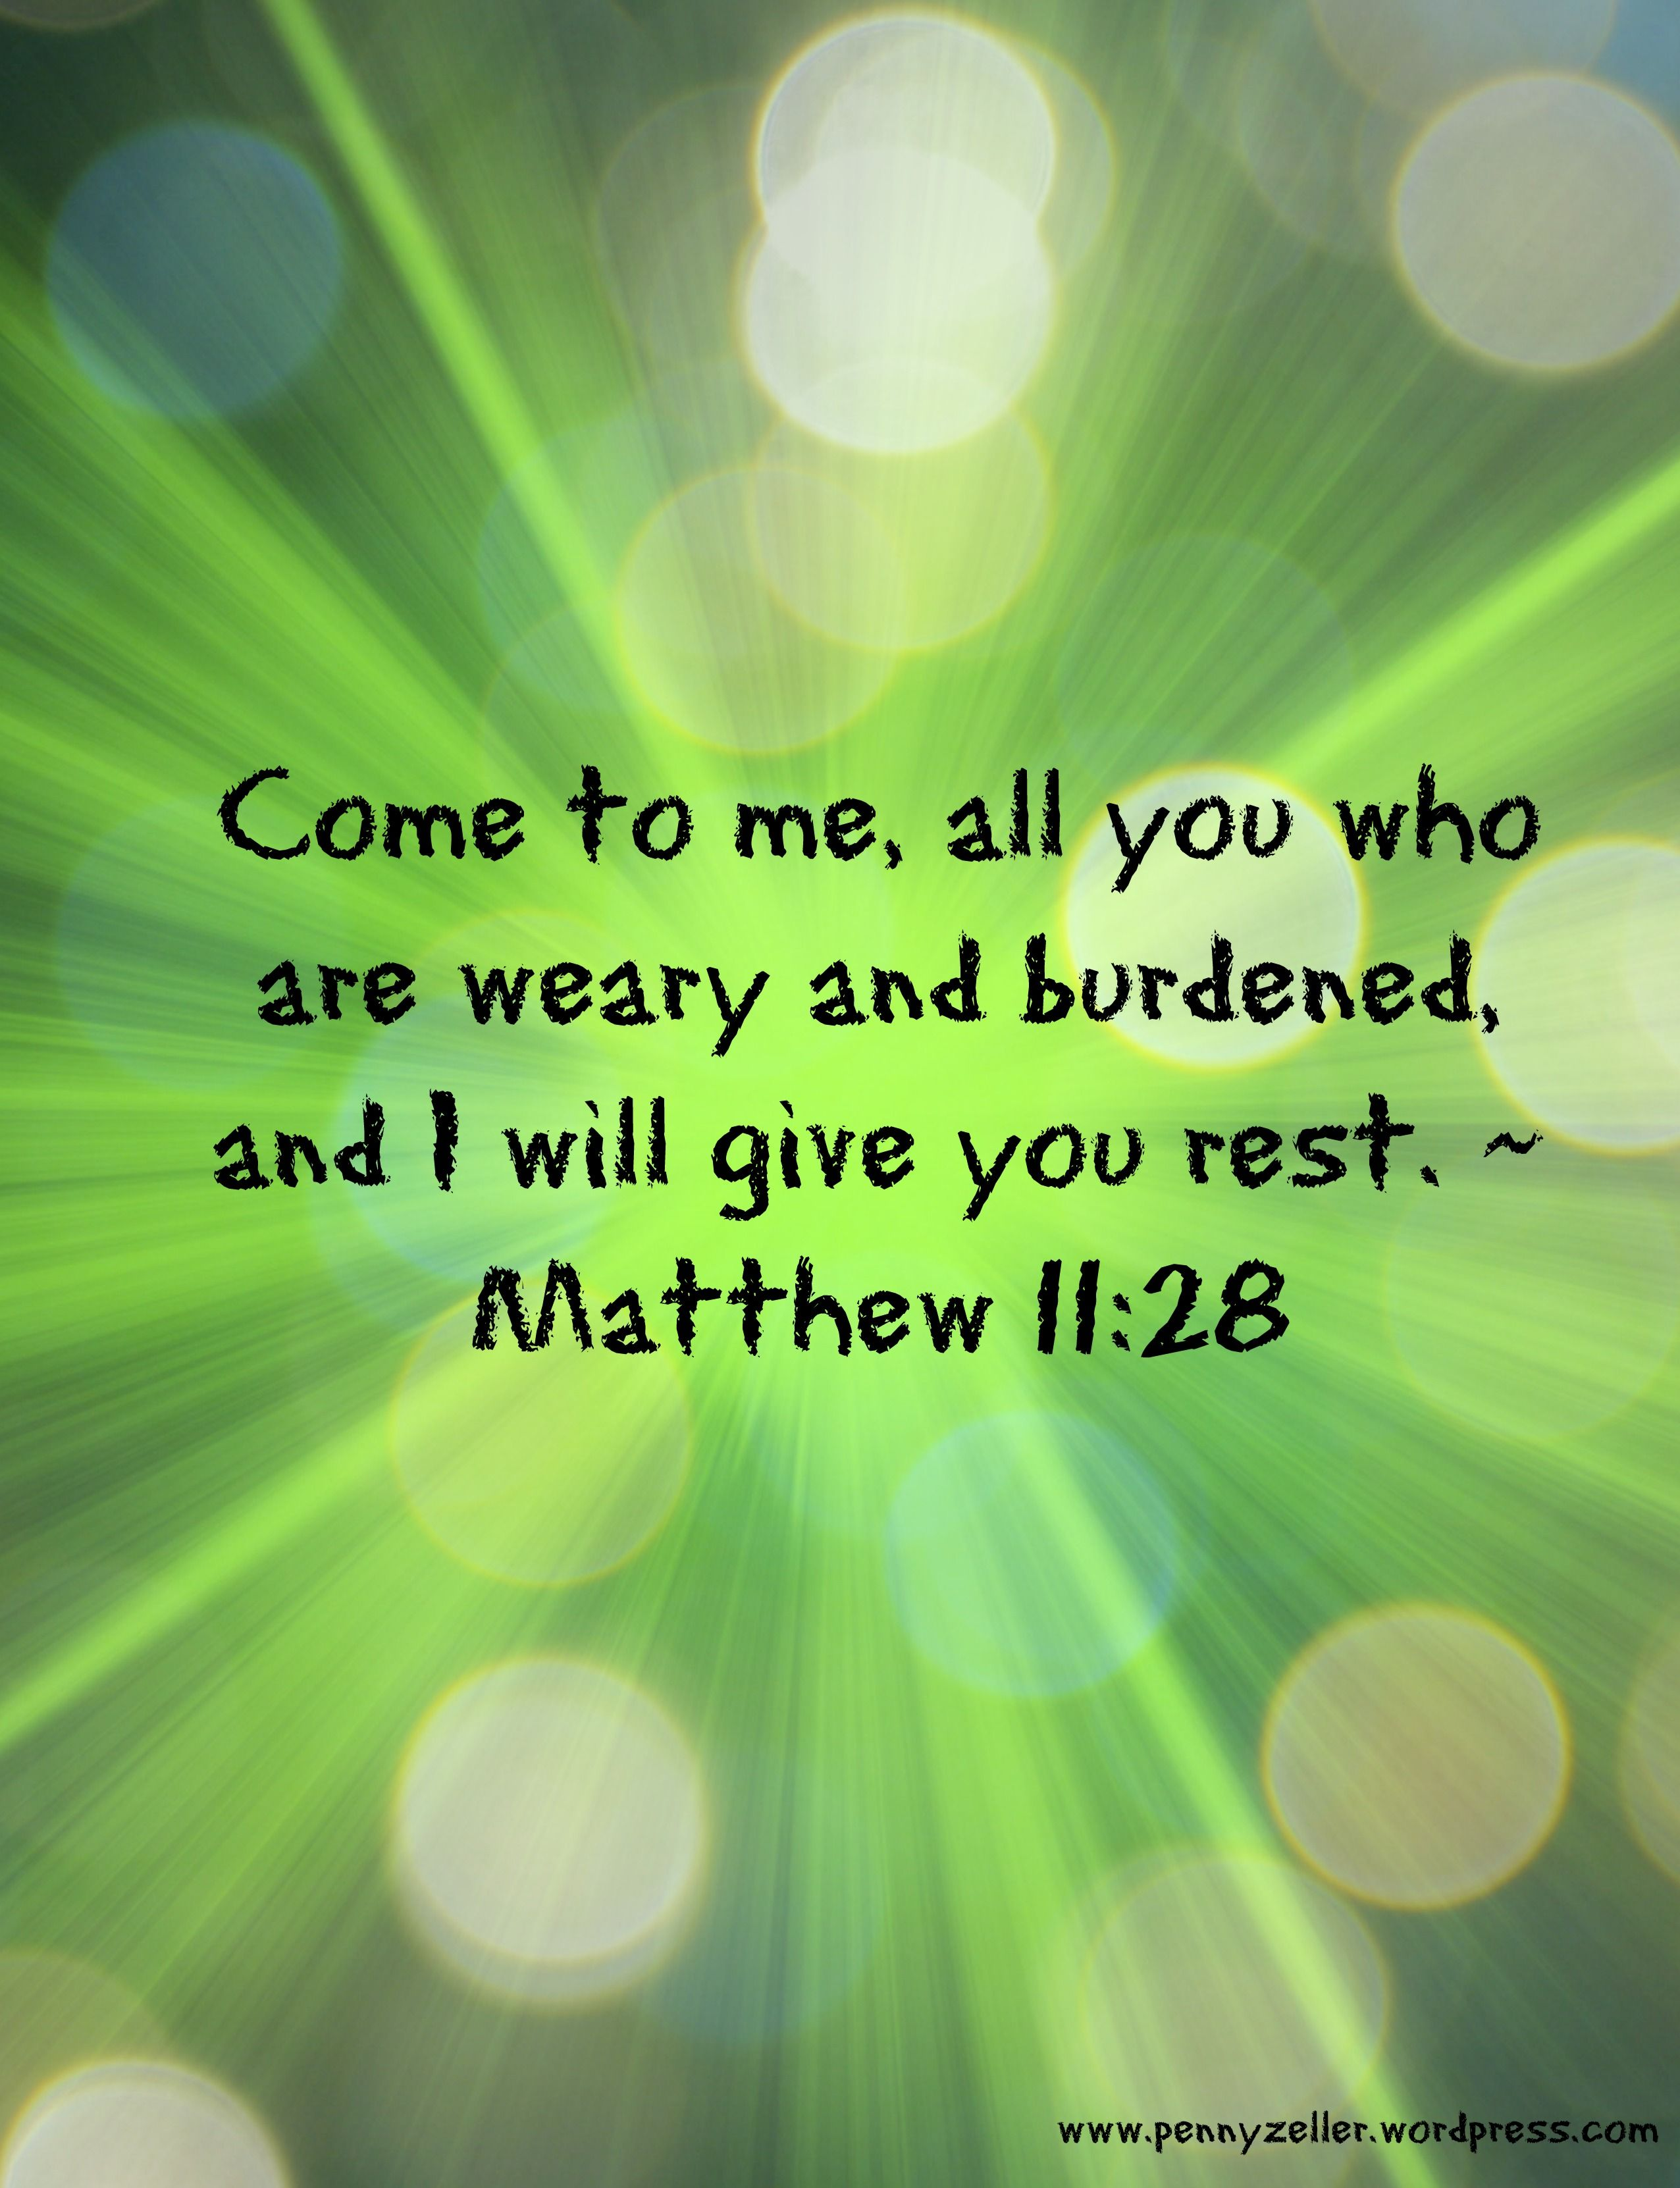 e unto me all ye that labour and are heavy laden and I will give you rest Matthew I Love the Bible and Jesus Christ Christian Quotes and verses